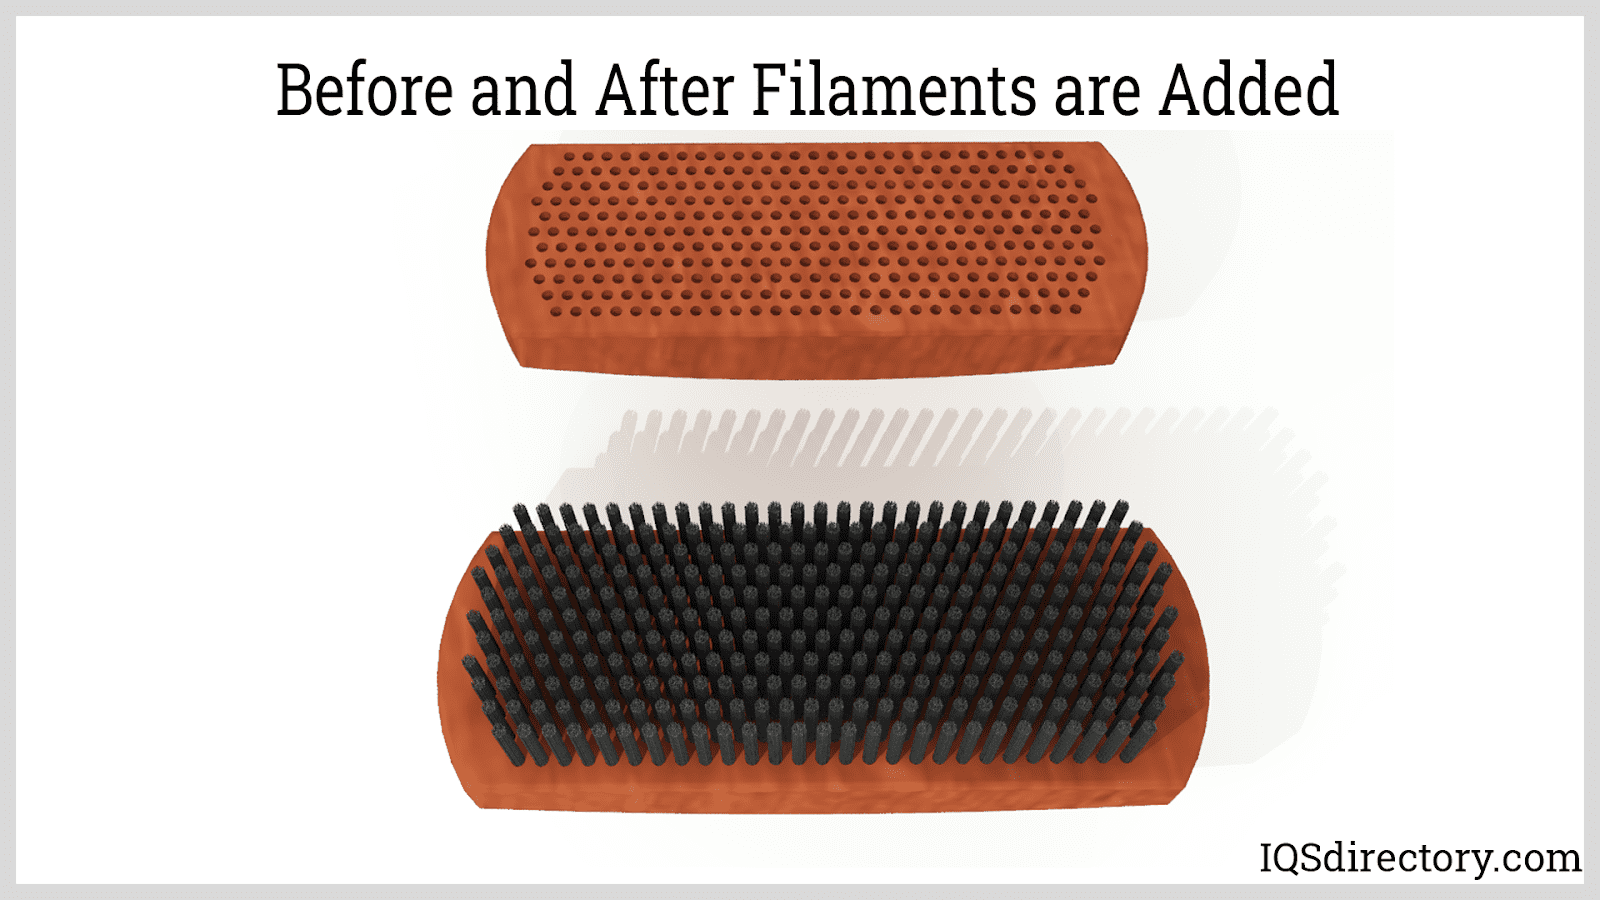 Before and After Filaments are Added